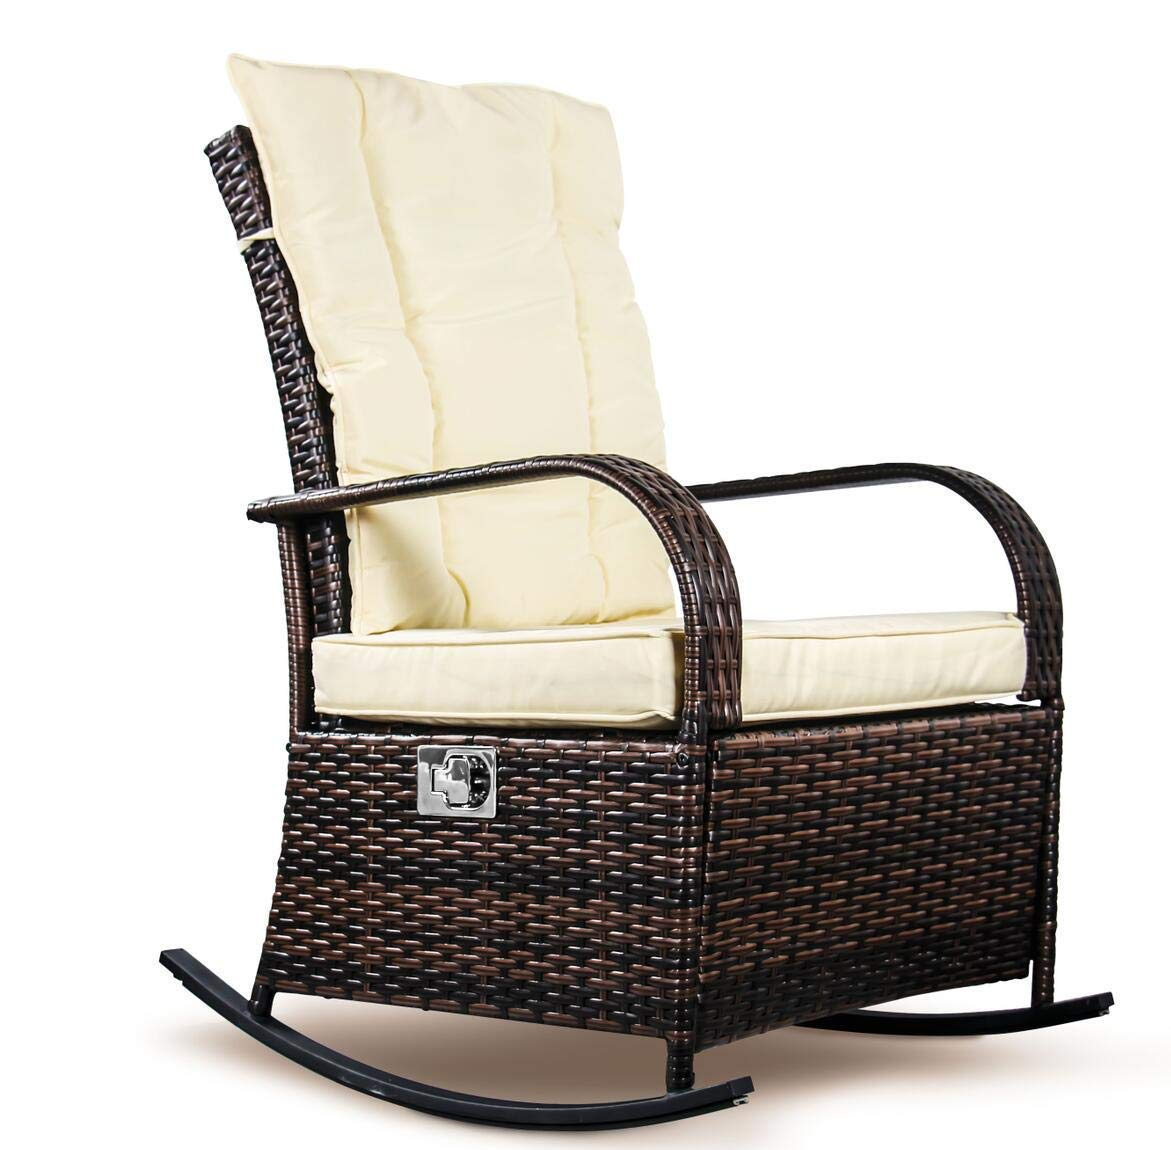 SCYL Color Your Life Outdoor Wicker Rocking Chair with Adjustable Backrest and Footrest,All Weather Patio Porch Deck Reclining Chair w/Cushion Beigewhite001(Brown)